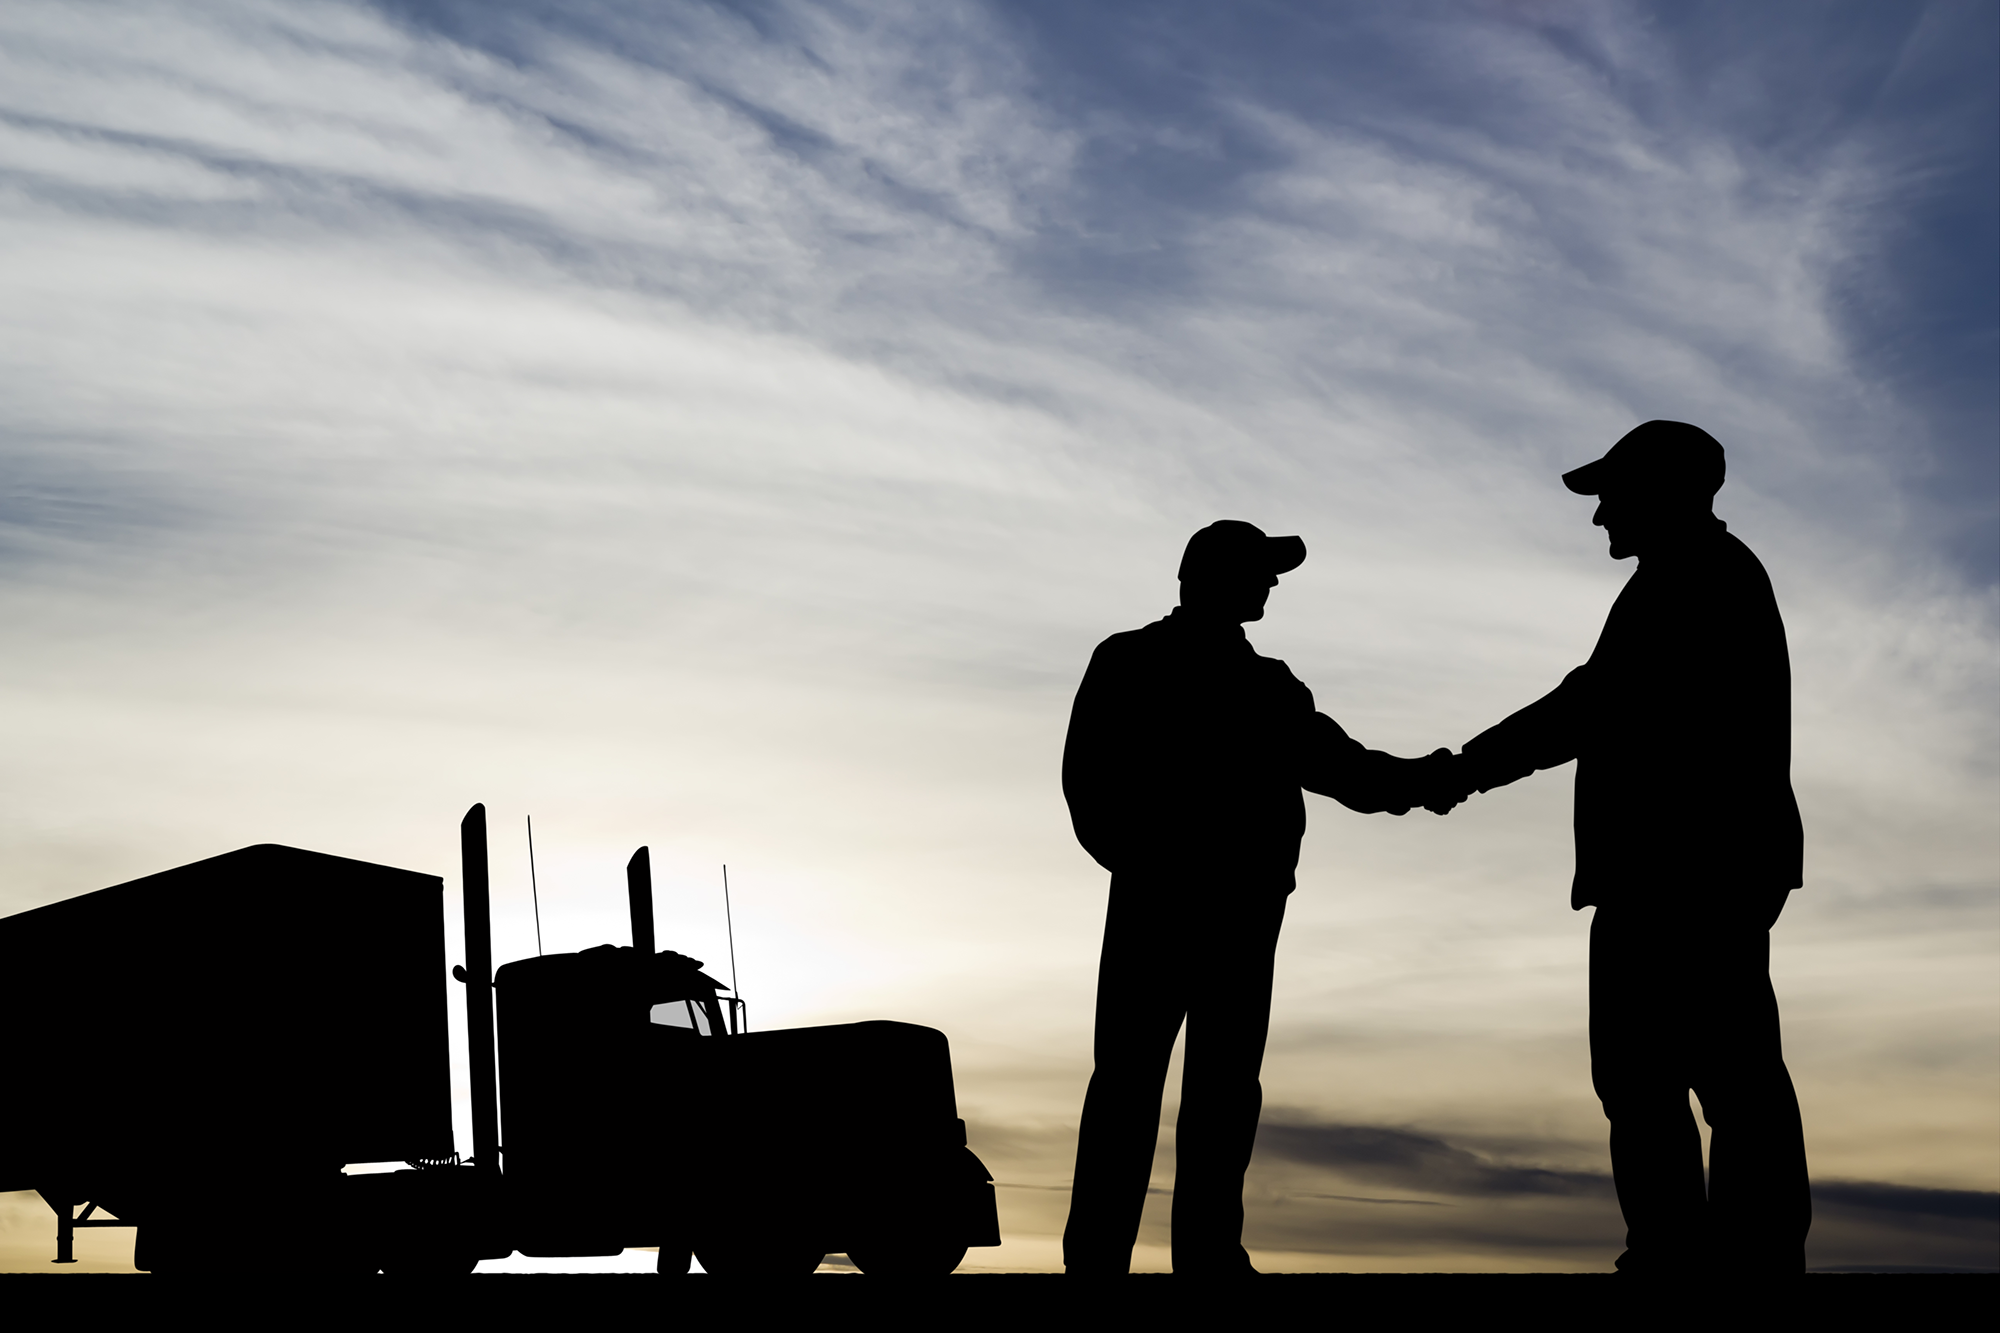 Thanking the Trucking Industry and Drivers in the Age of COVID-19